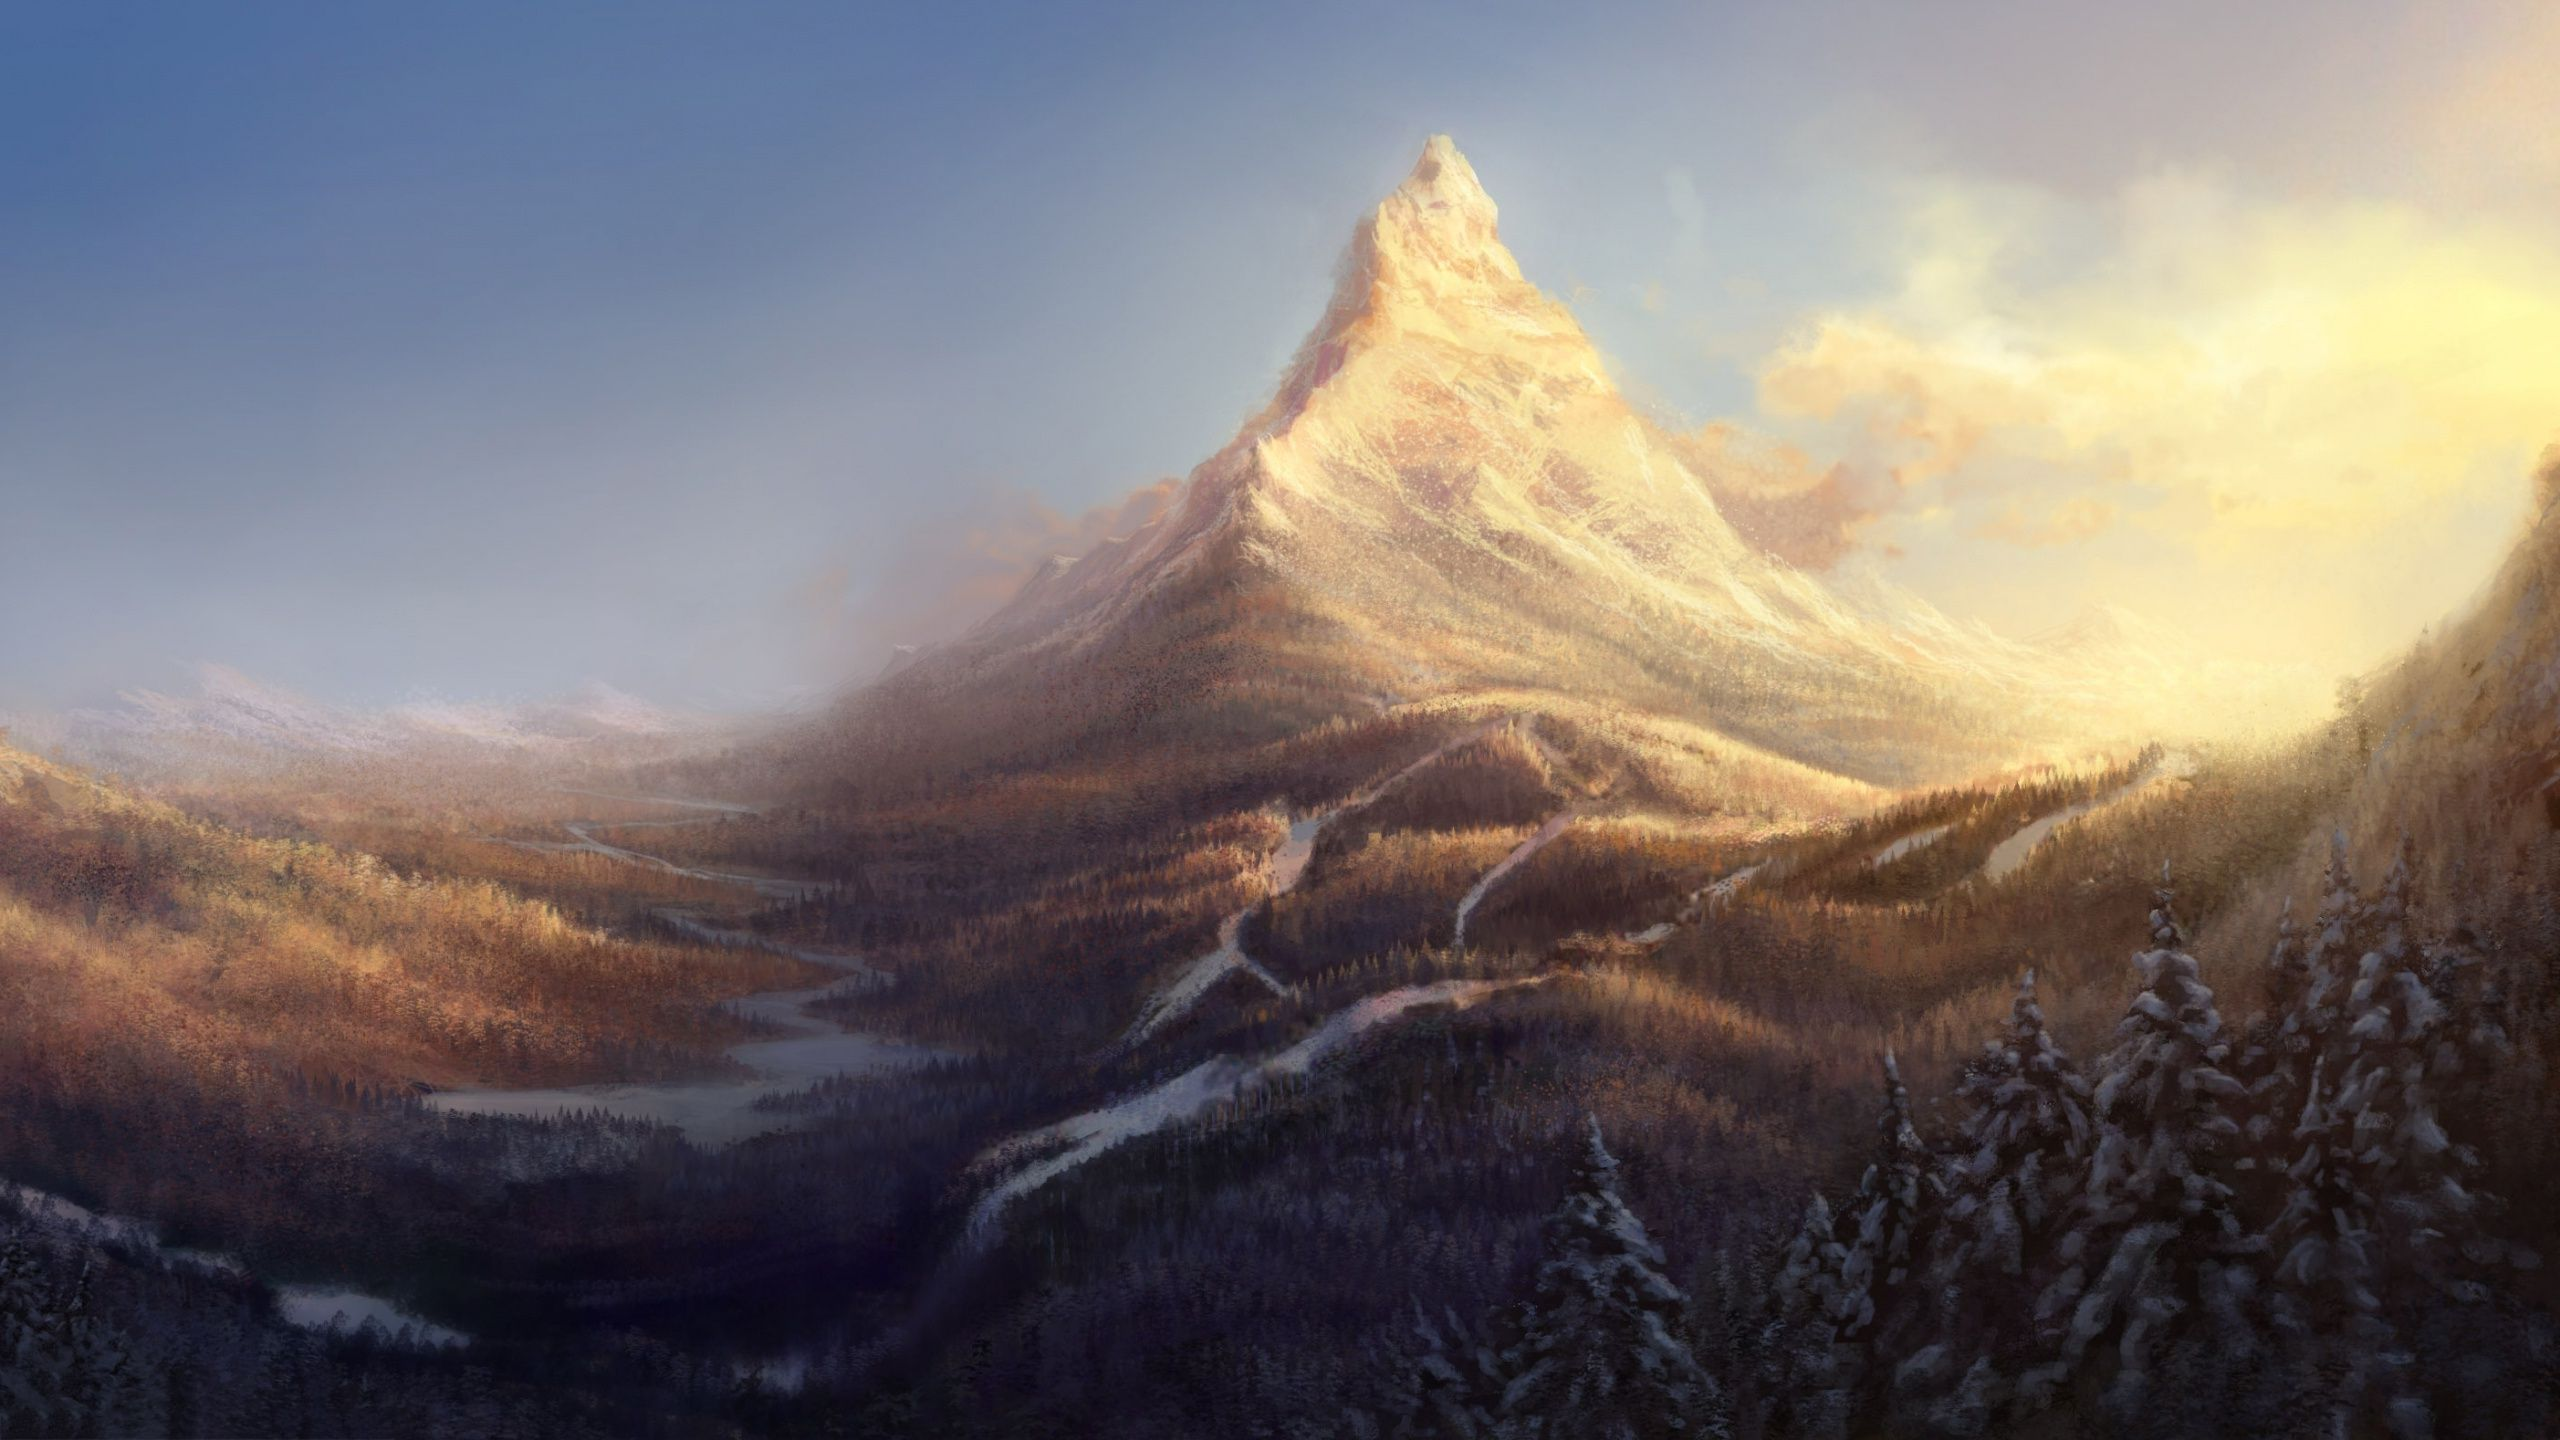 Best Wallpaper Mountain Art - 7d02c40f39a74275cebe06f745b2bfc7  Perfect Image Reference_664100.jpg